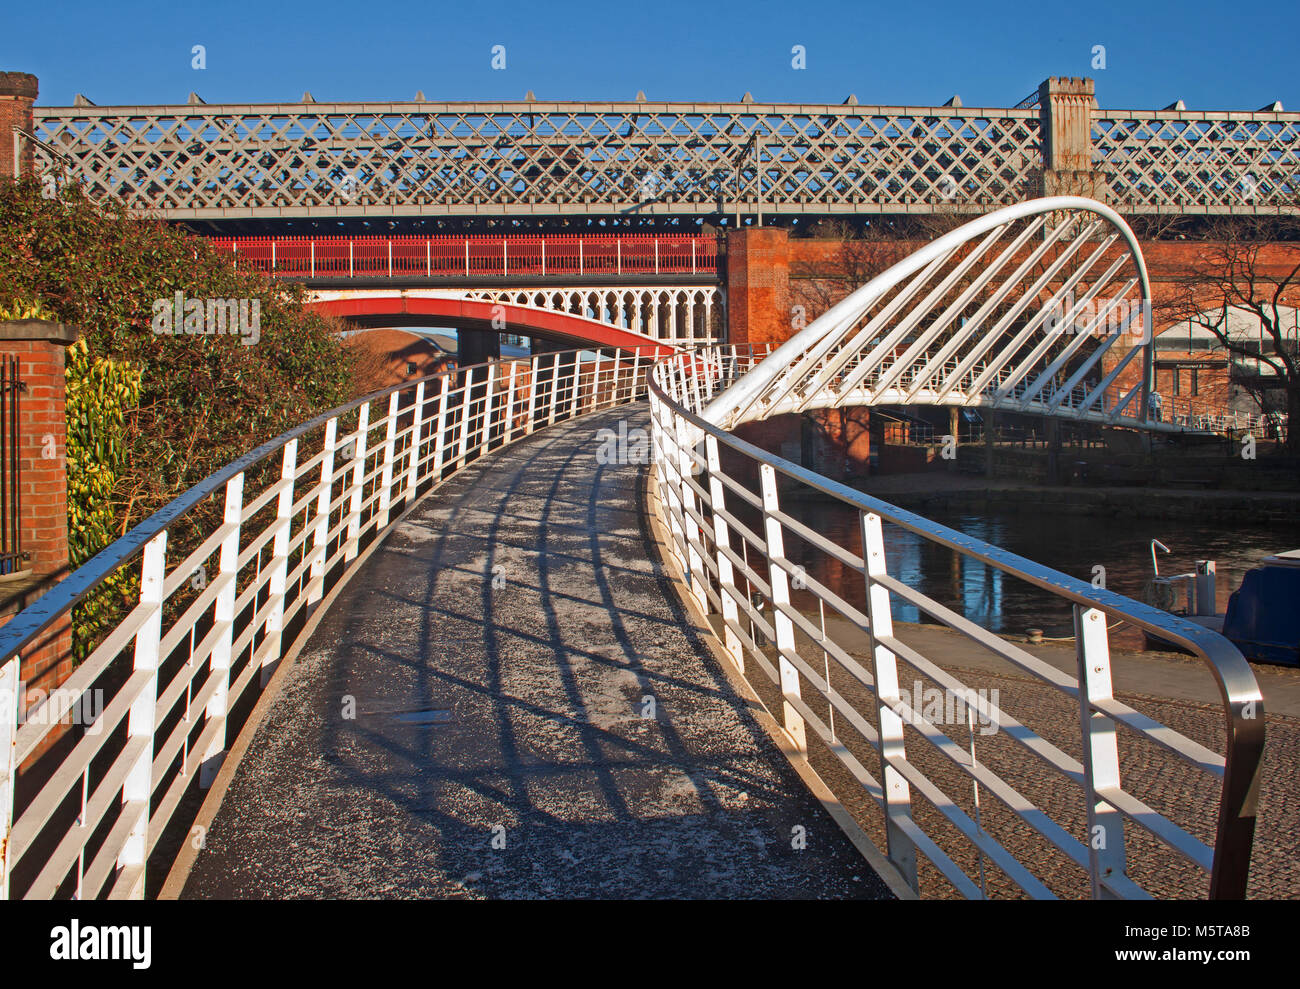 Bridges of Castlefield, Manchester, with Merchant's bridge leading the eye to the historic railway bridge - Stock Image